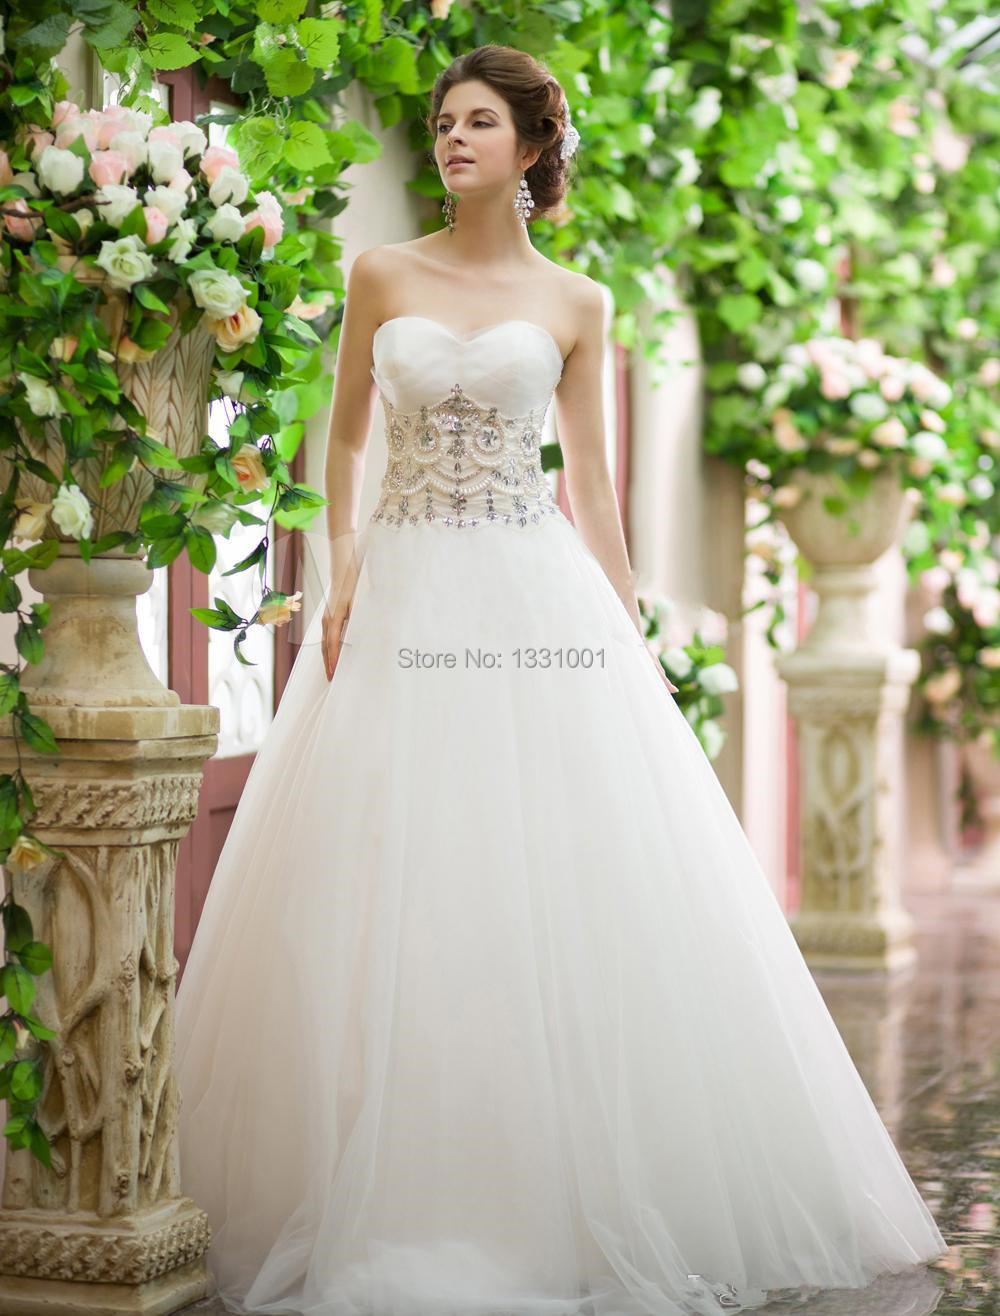 Modern Country Chic Wedding Dress : New fashionable sexy country style wedding dresses floor length